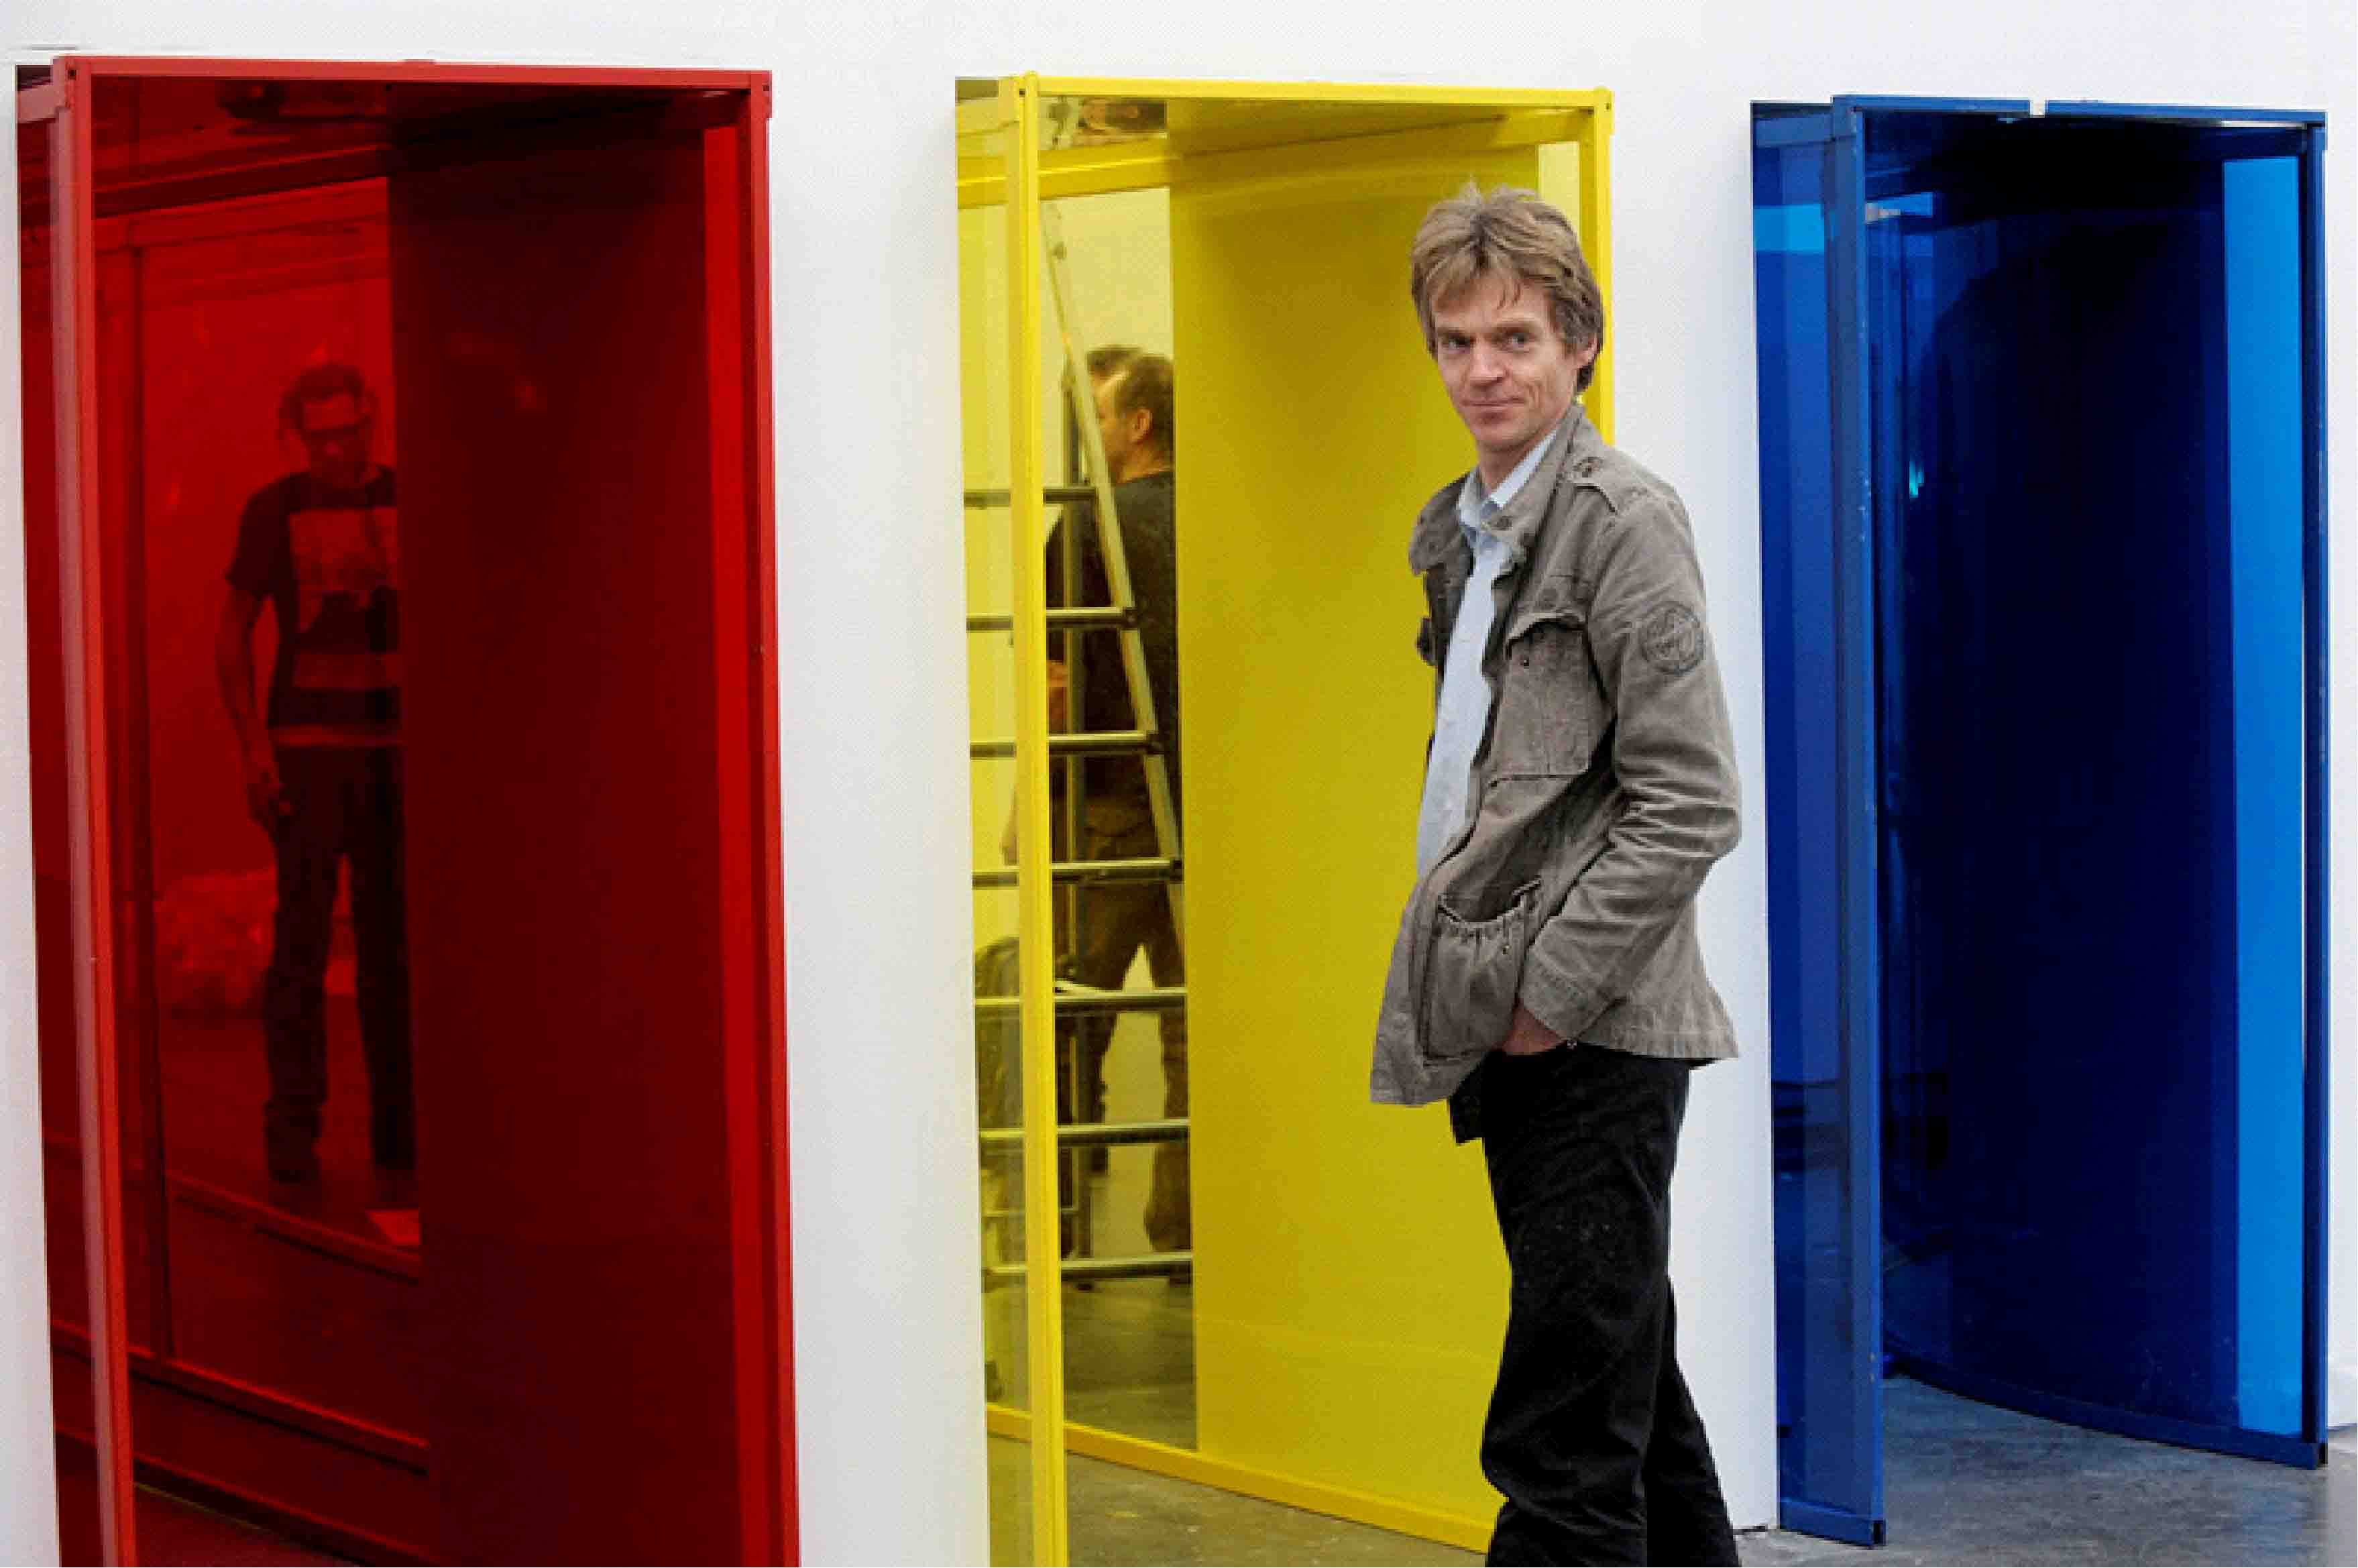 Job Koelewijn in front of 'red, yellow and blue'